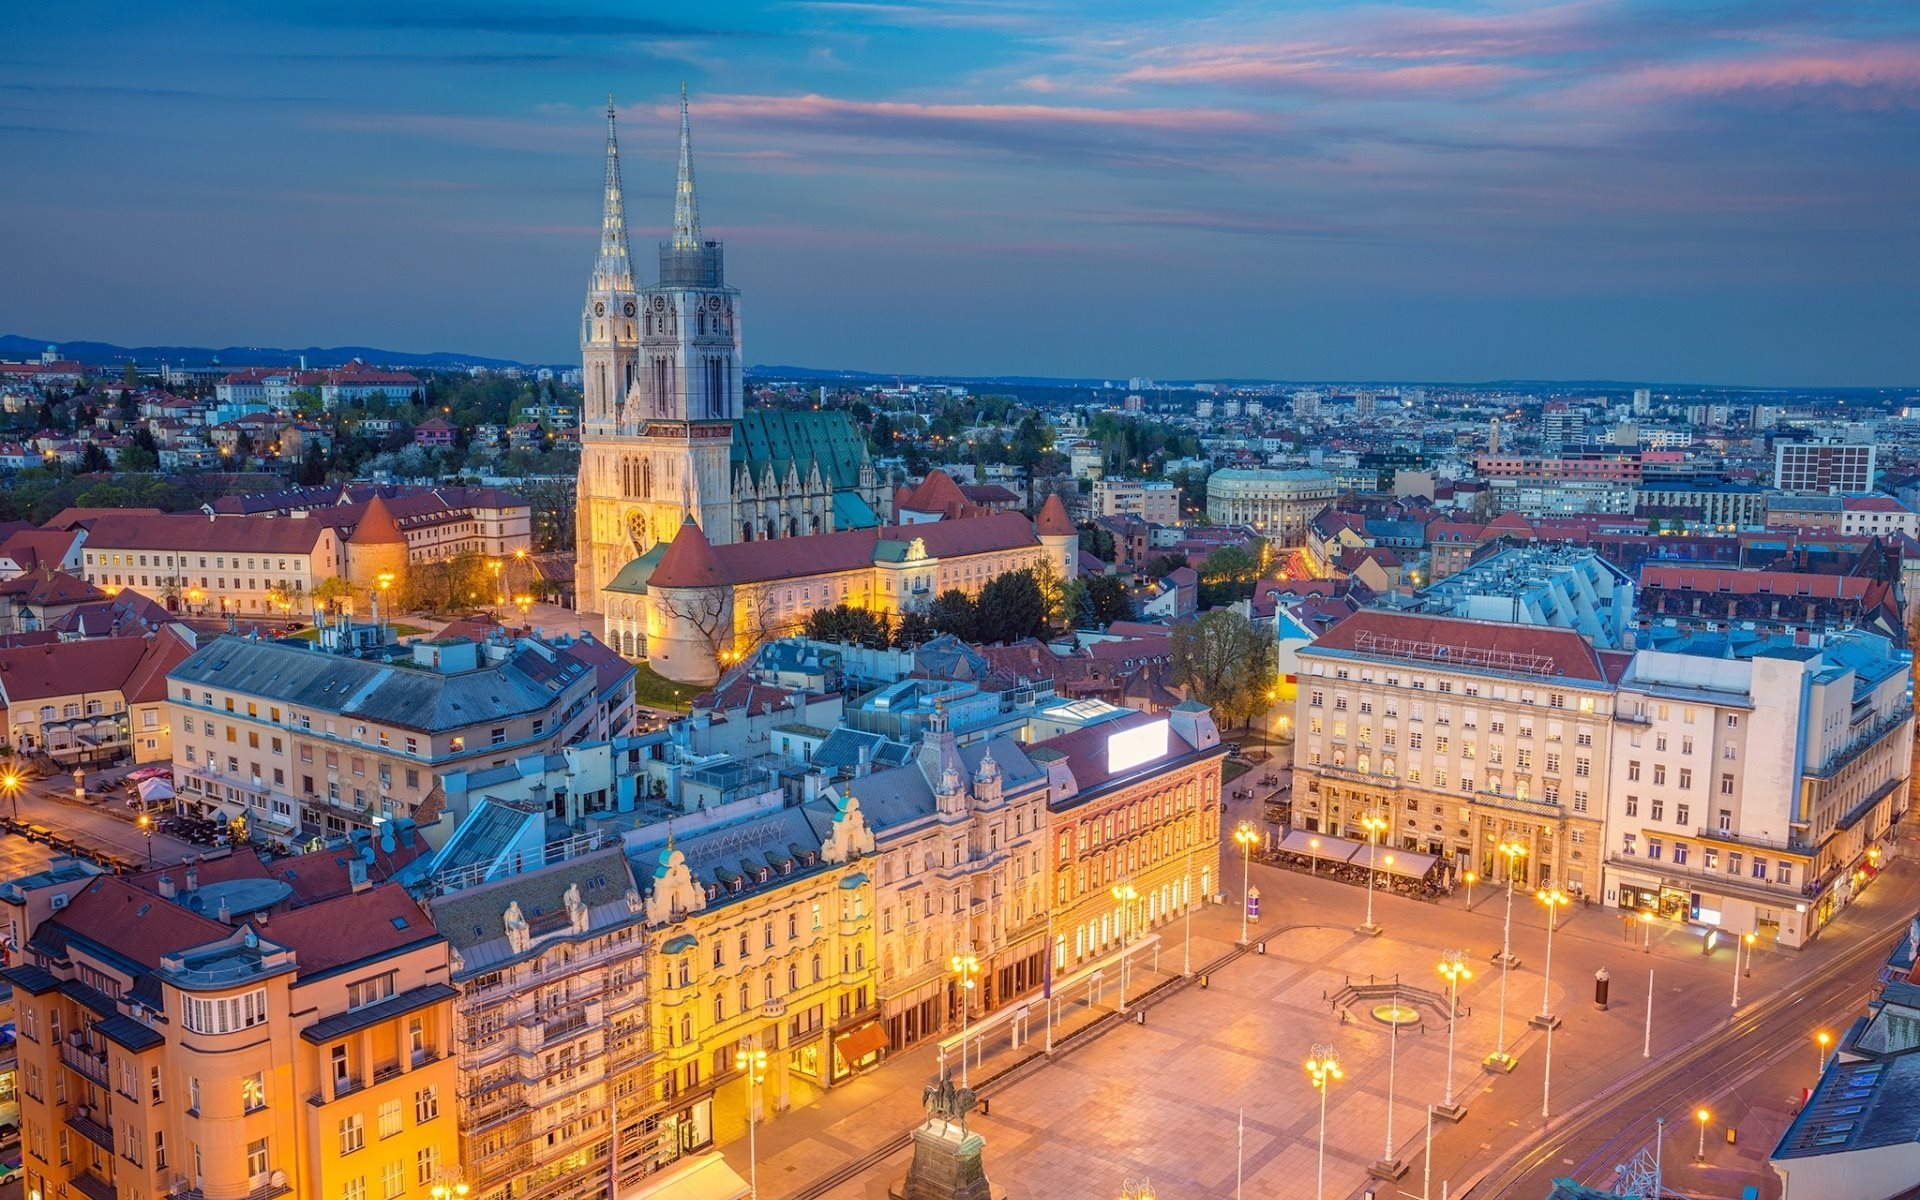 Zagreb, Croatia - Monterrasol private tours to Zagreb, Croatia. Travel agency offers custom private car tours to see Zagreb in Croatia. Order custom private tour to Zagreb with departure date on request.